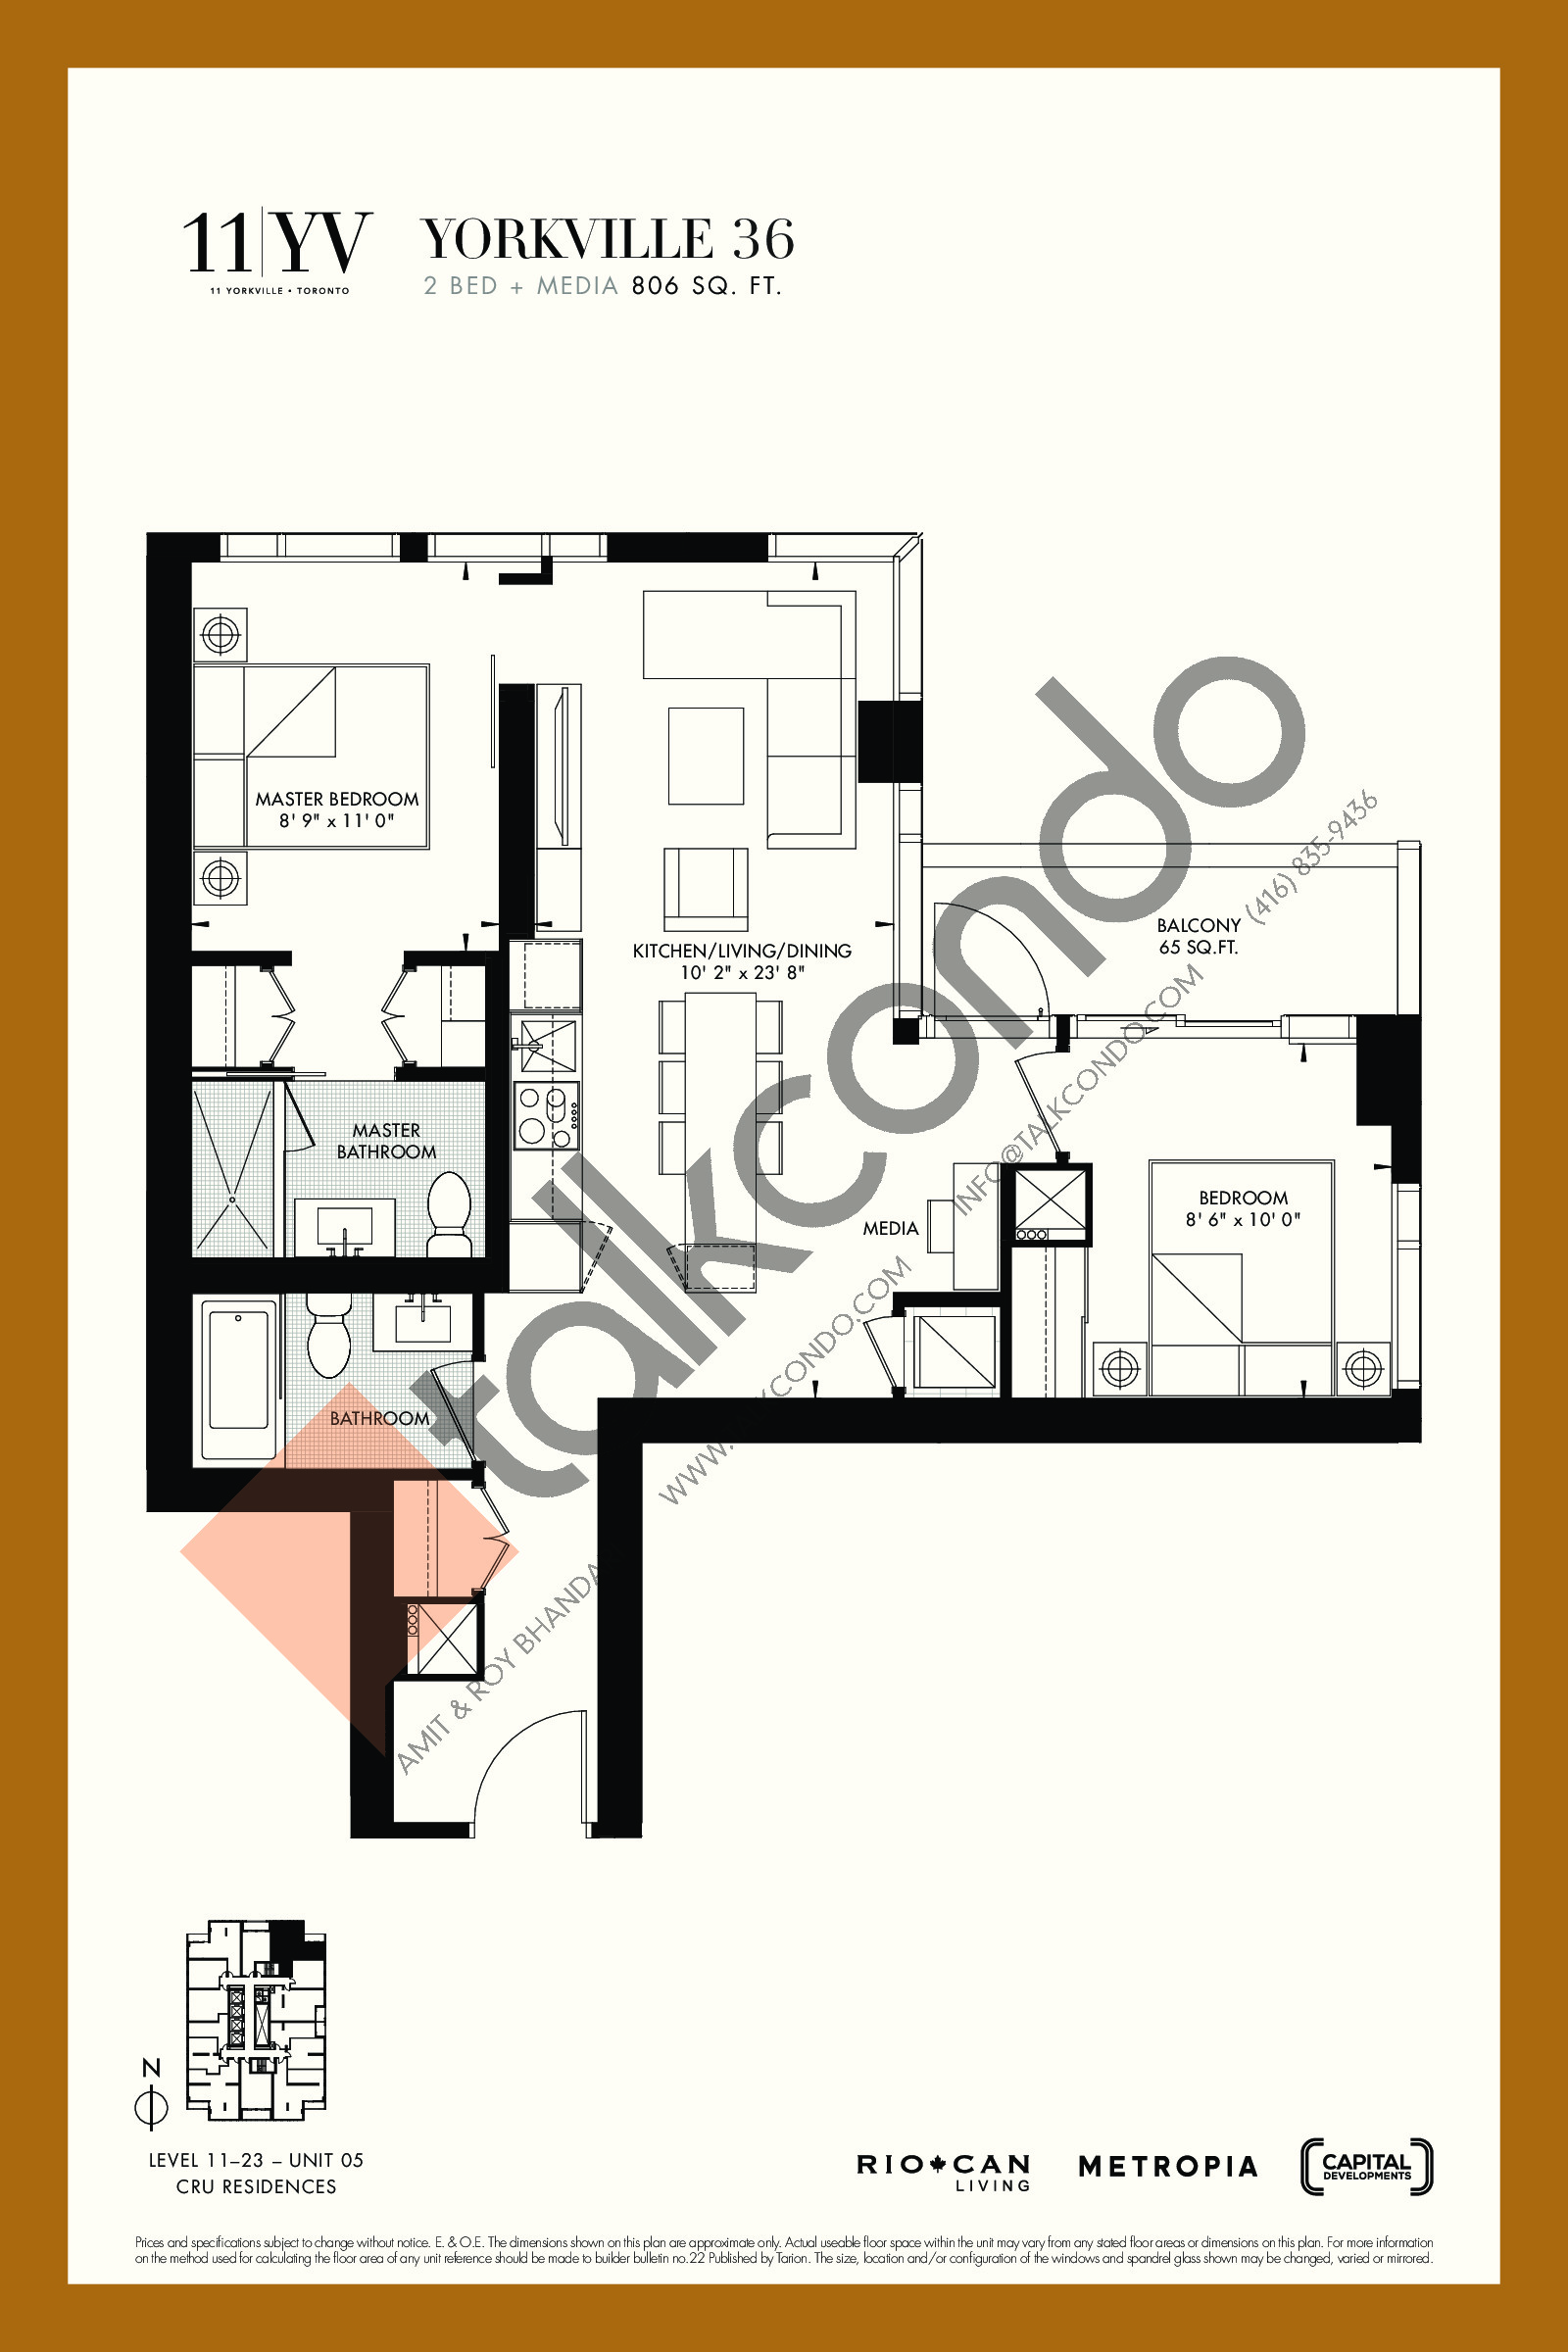 Yorkville 36 Floor Plan at 11YV Condos - 806 sq.ft